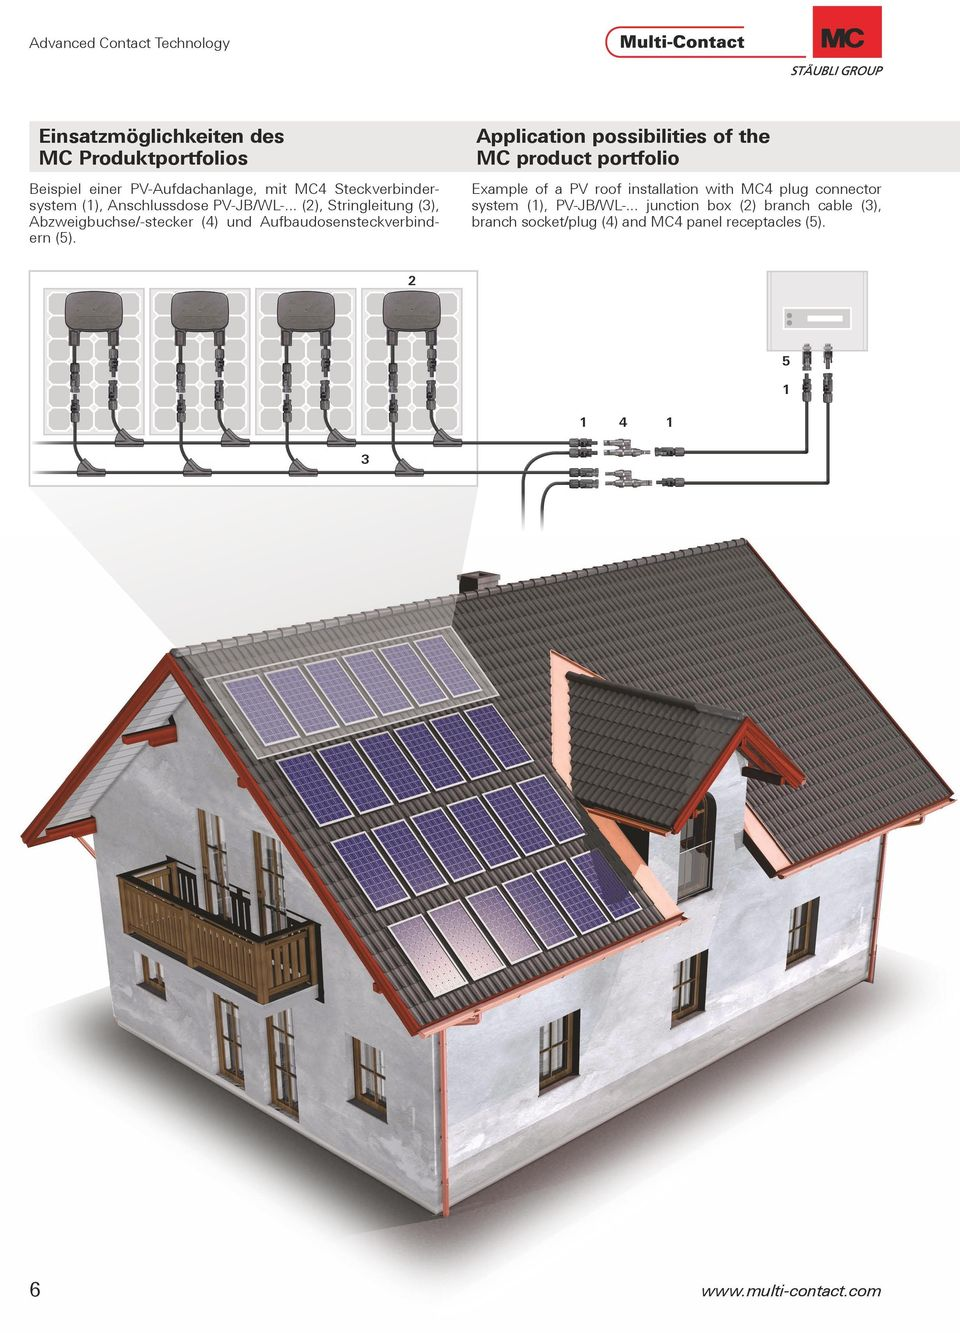 Application possibilities of the MC product portfolio Example of a PV roof installation with MC4 plug connector system (,